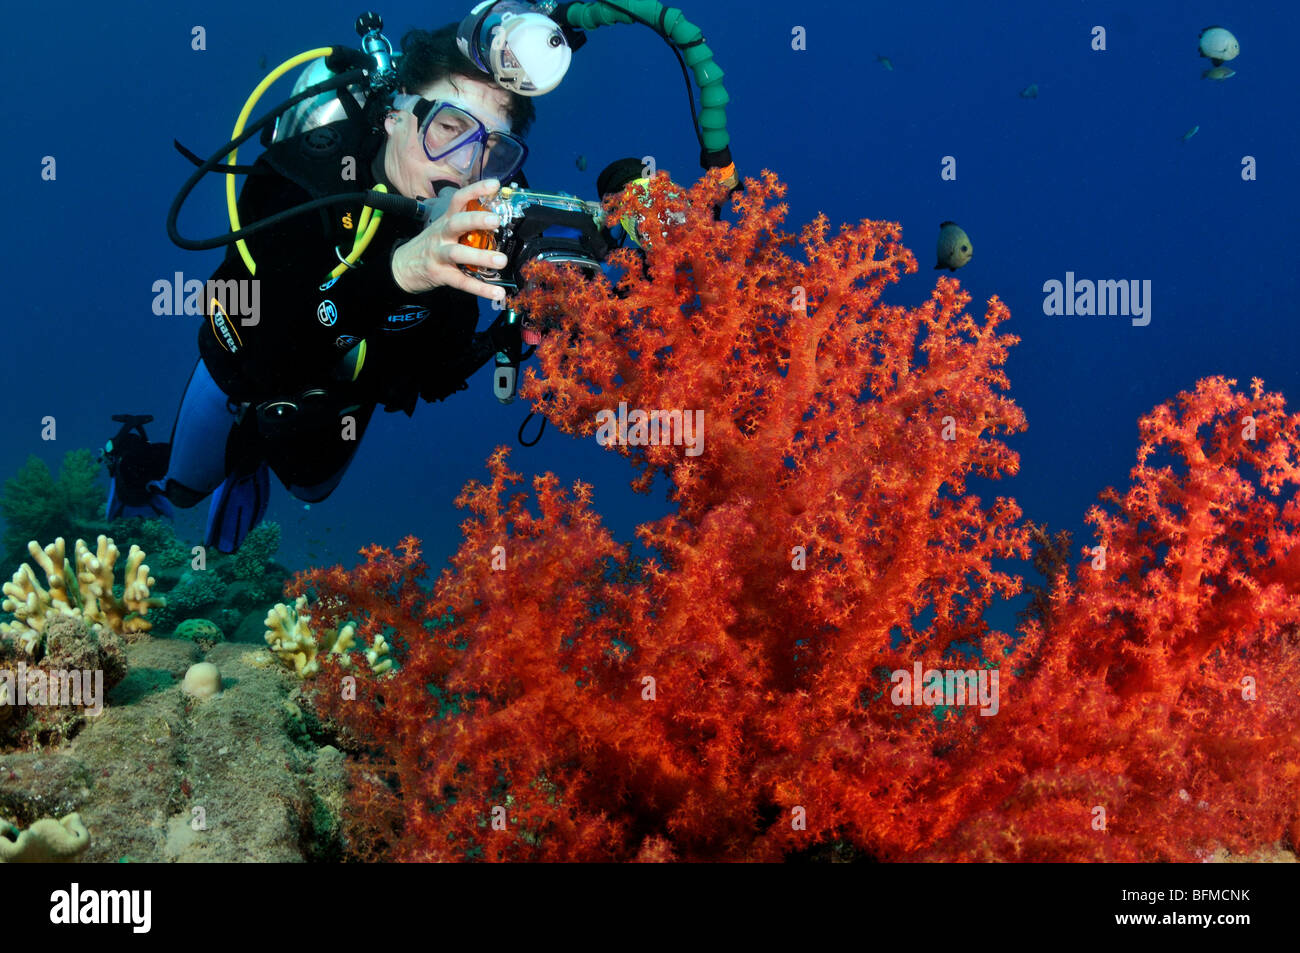 Scuba diver with compact camera on coral reef with soft corals, 'Red Sea' - Stock Image